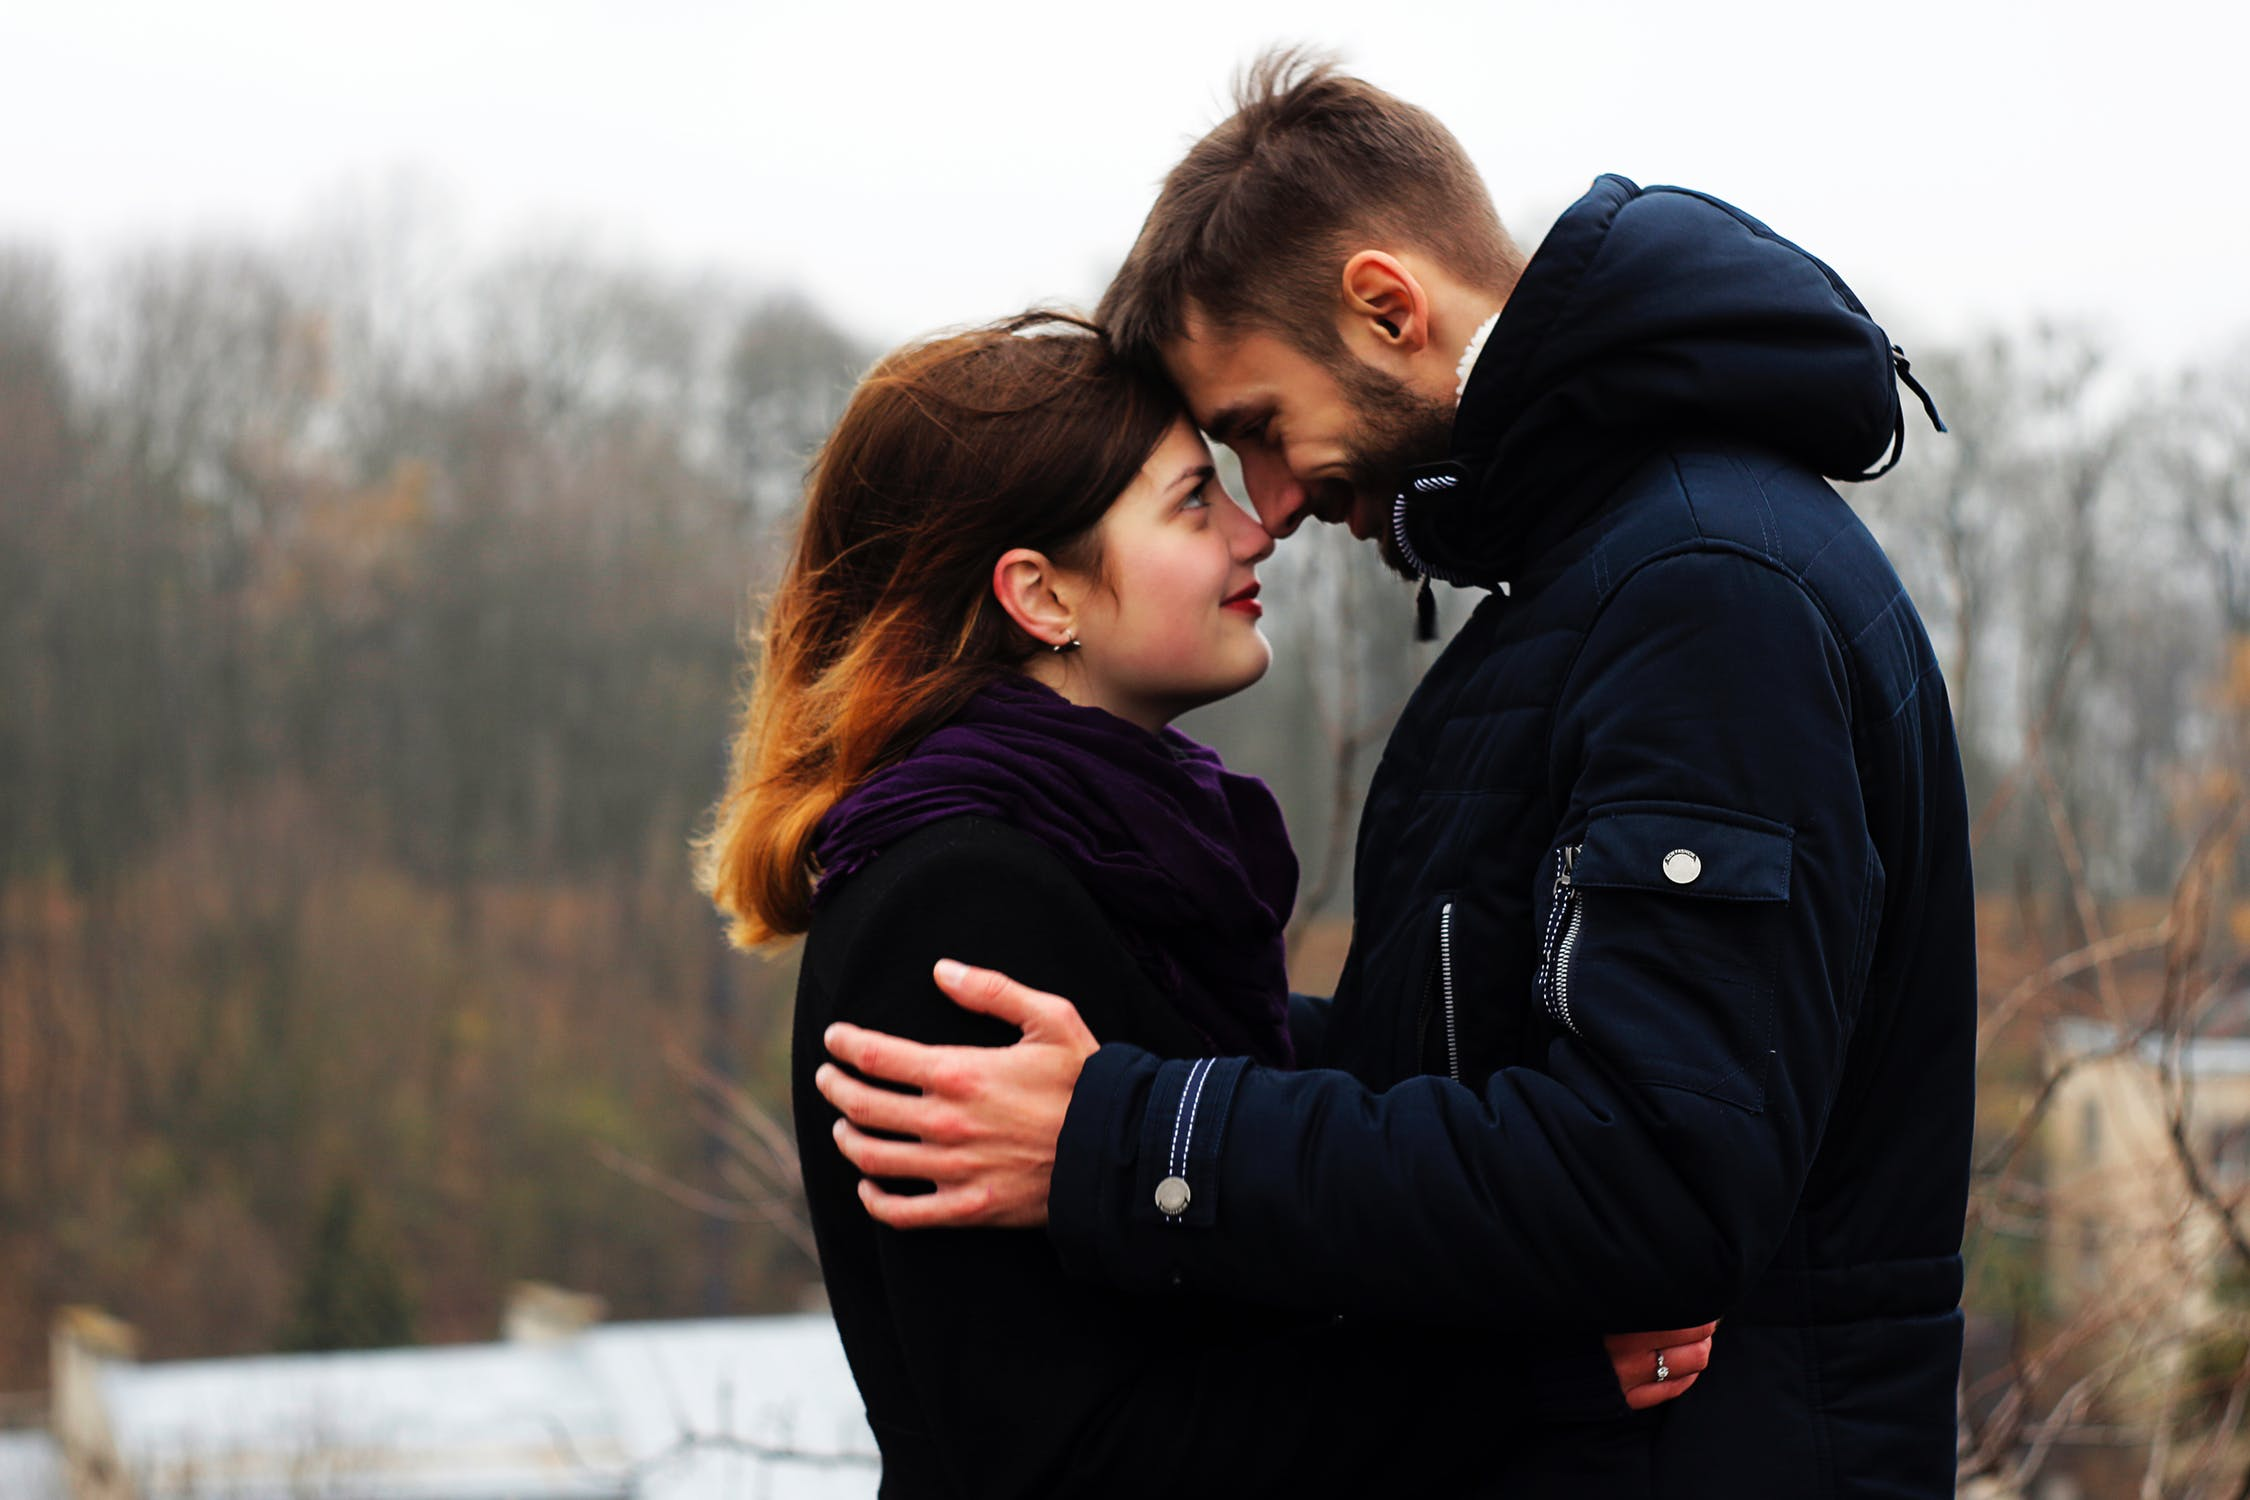 20+ Signs He Has A Secret Crush On You